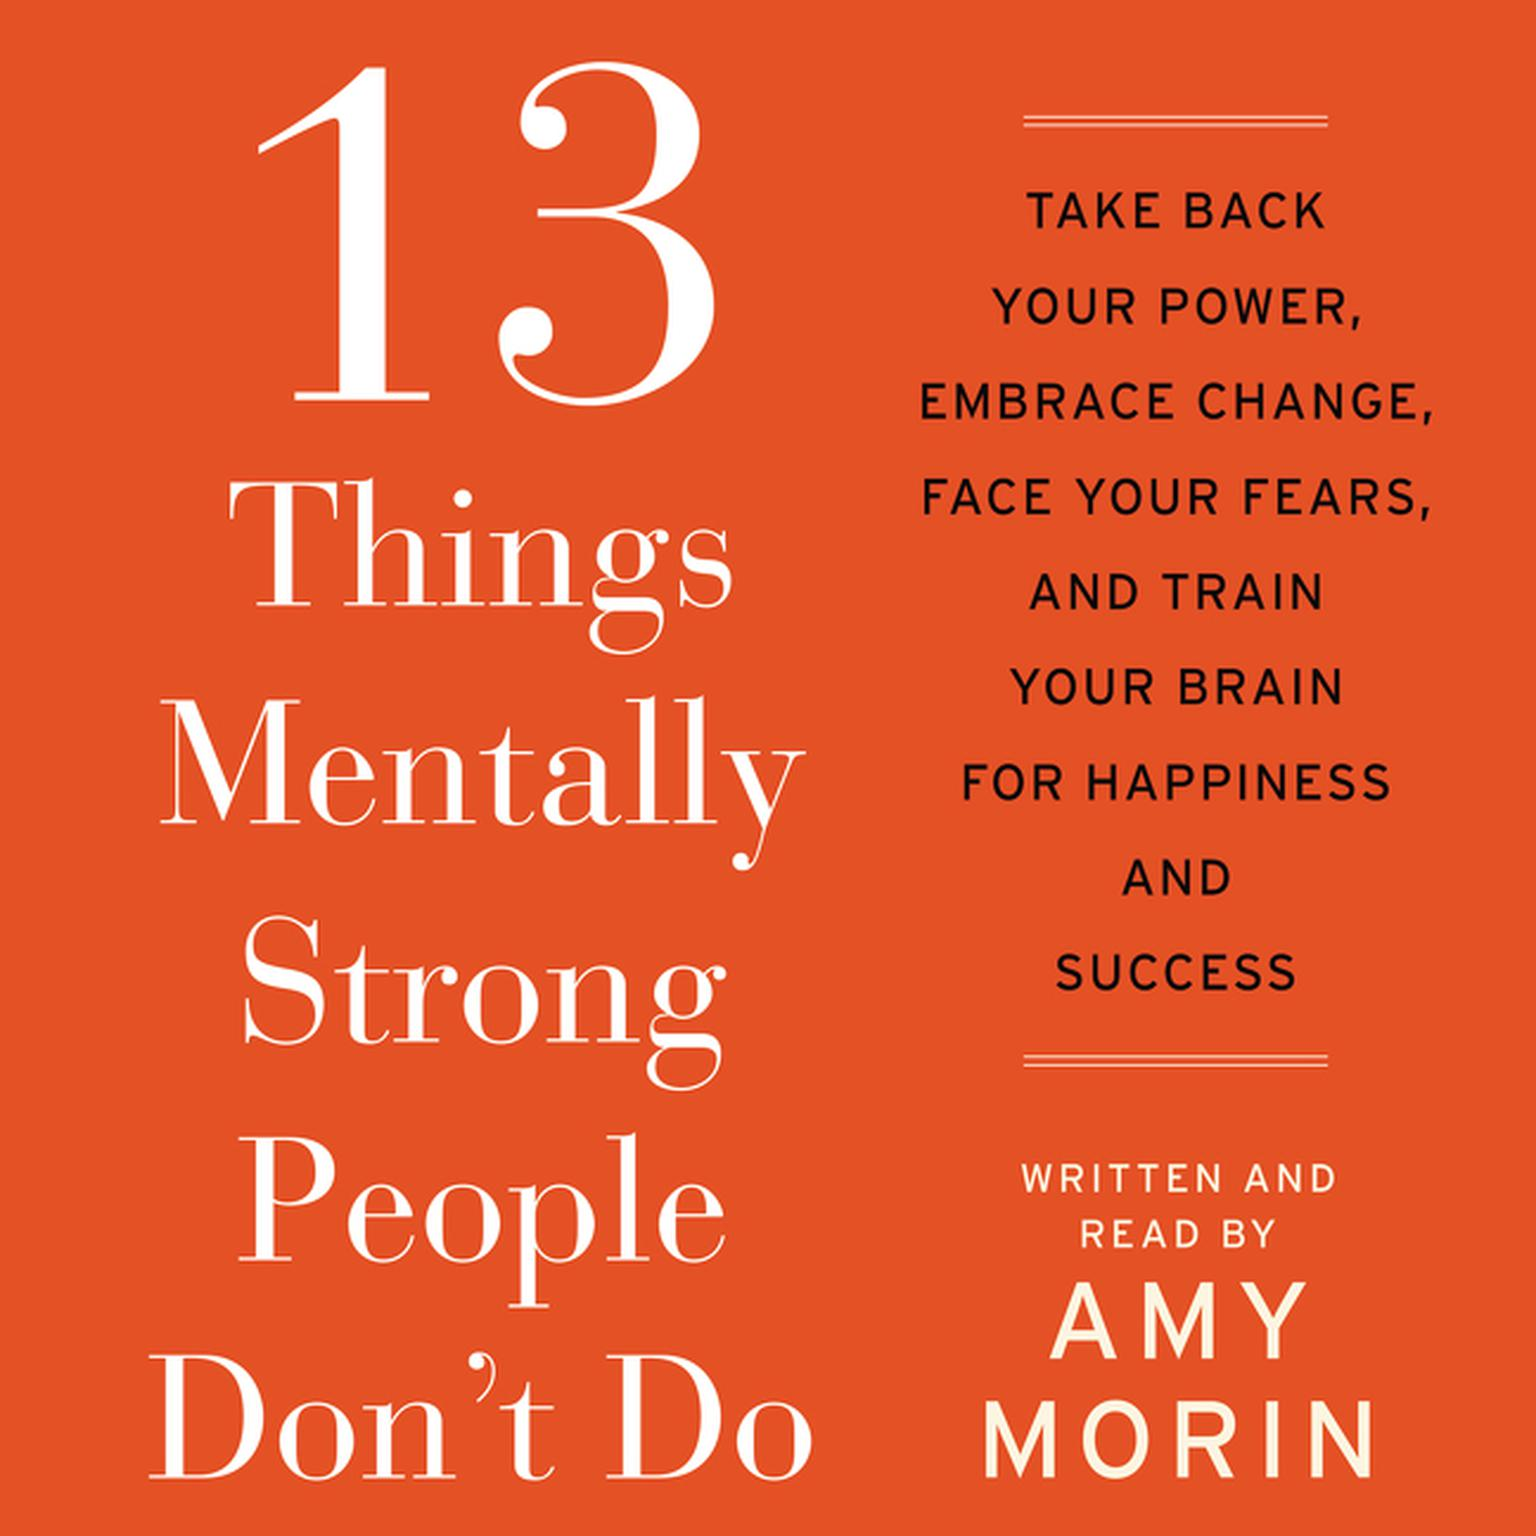 Printable 13 Things Mentally Strong People Don't Do: Take Back Your Power, Embrace Change, Face Your Fears, and Train Your Brain for Happiness and Success Audiobook Cover Art